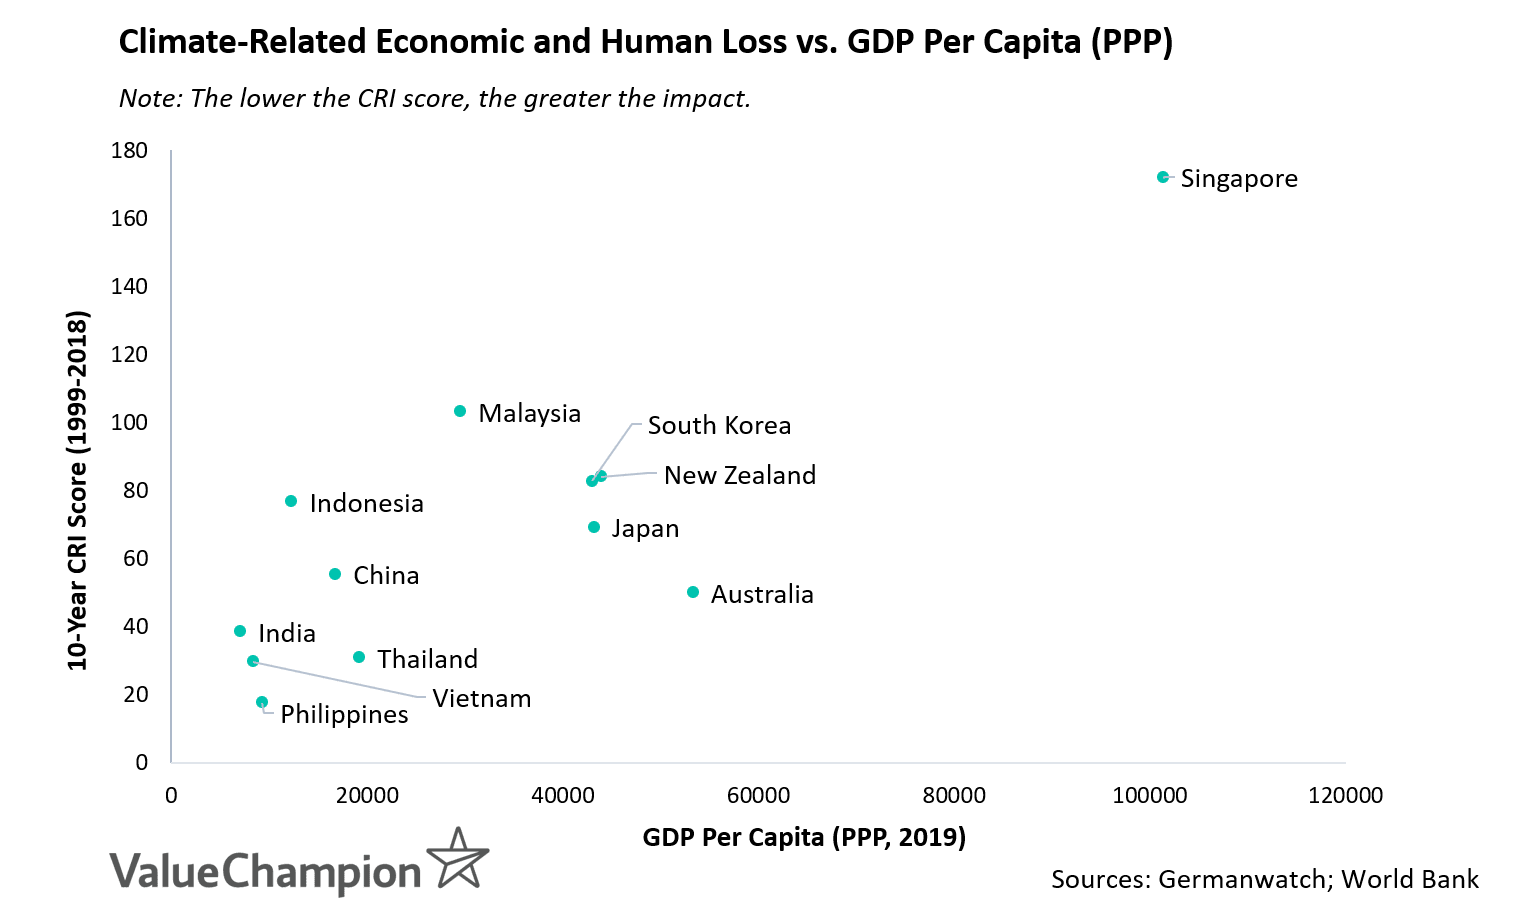 This graph shows the 10-year climate risk score that measures the impact of weather-related economic and human losses compared to the country's GDP per capita